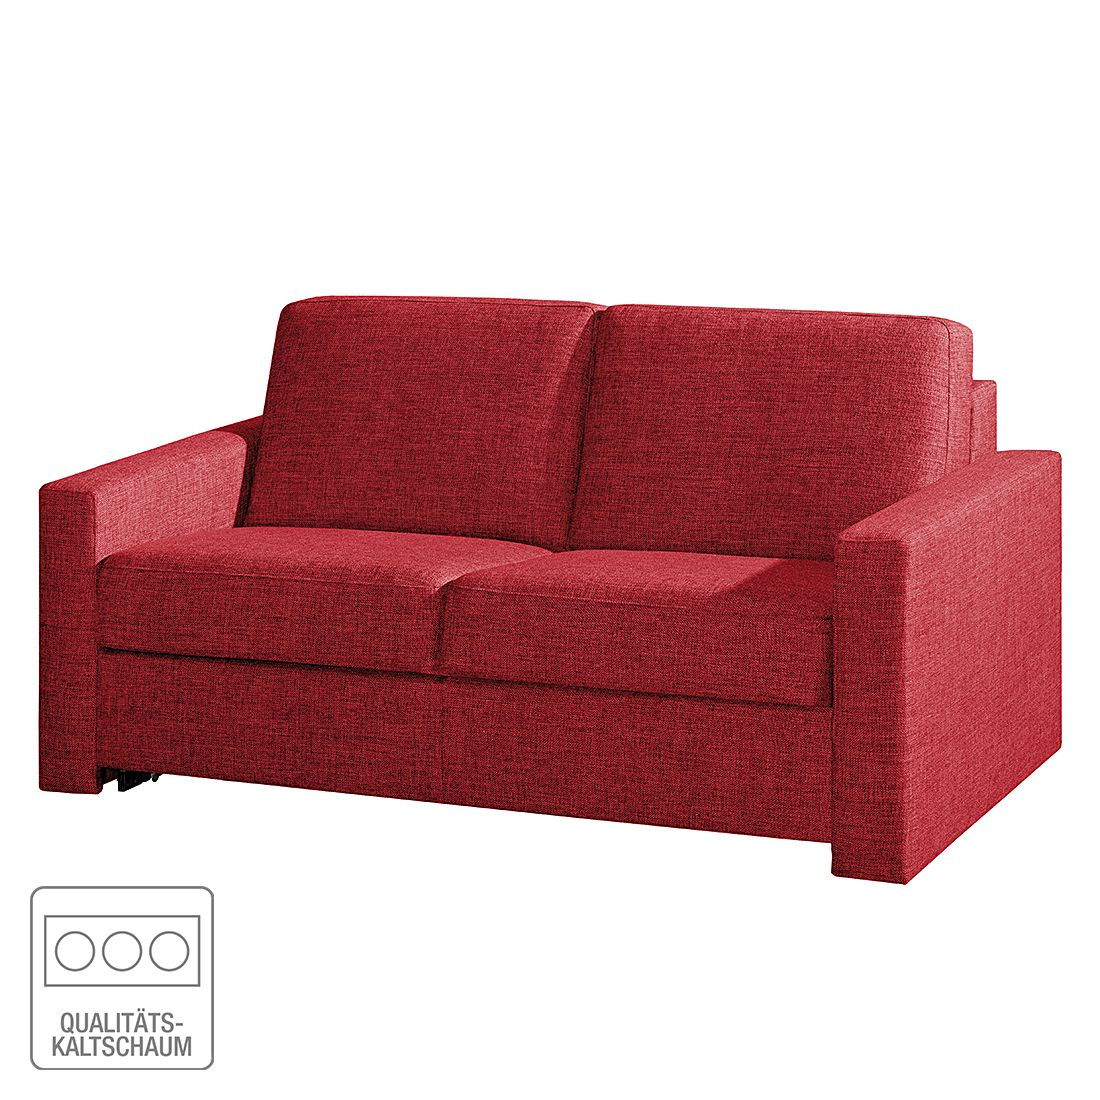 schlafsofa louis webstoff rot breite 168 cm modoform. Black Bedroom Furniture Sets. Home Design Ideas